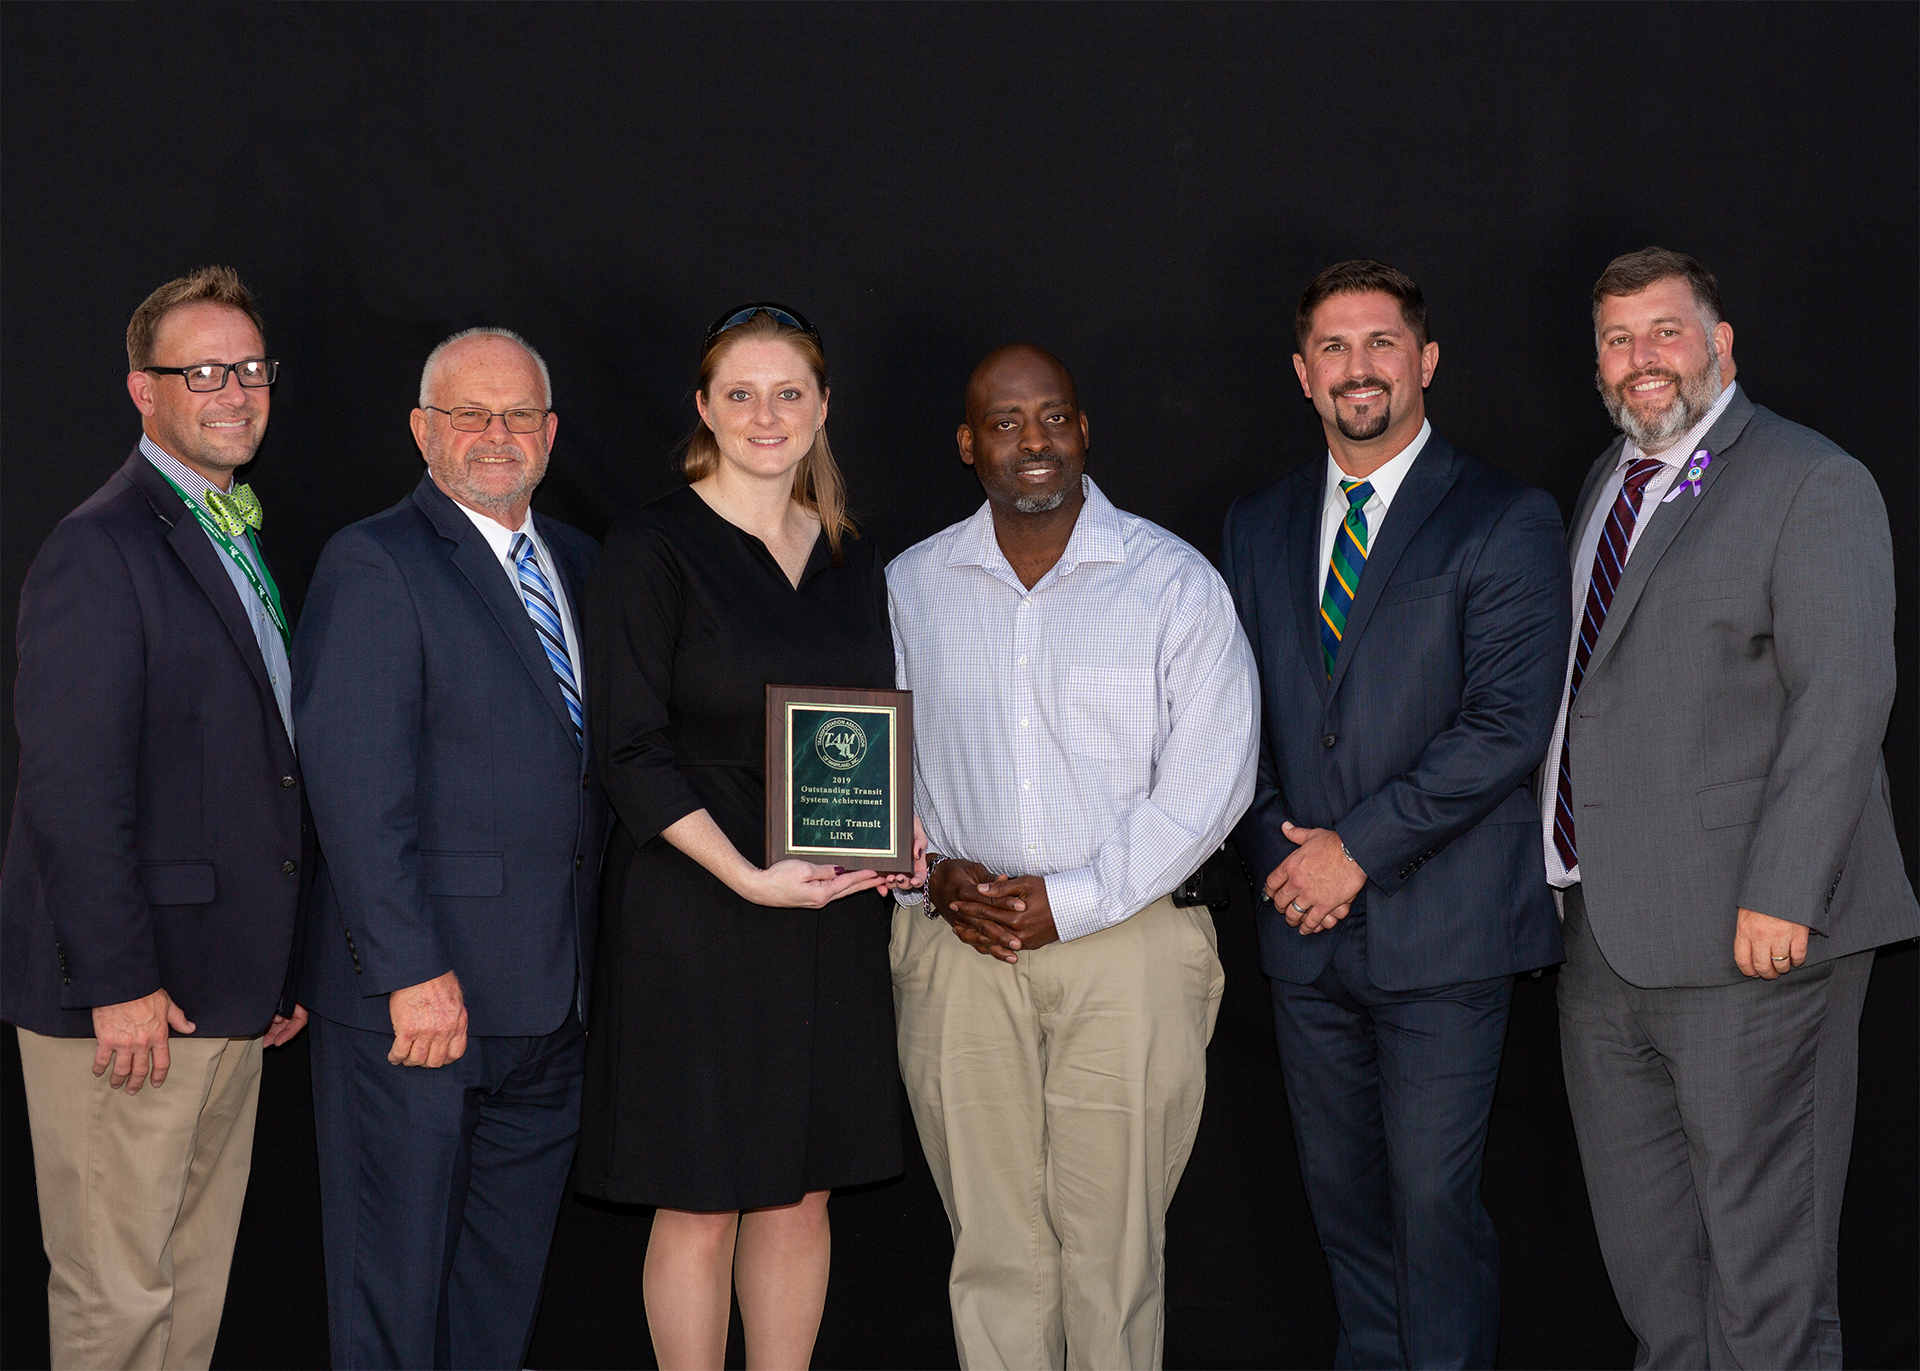 Harford Transit LINK: Outstanding Transit System 2019